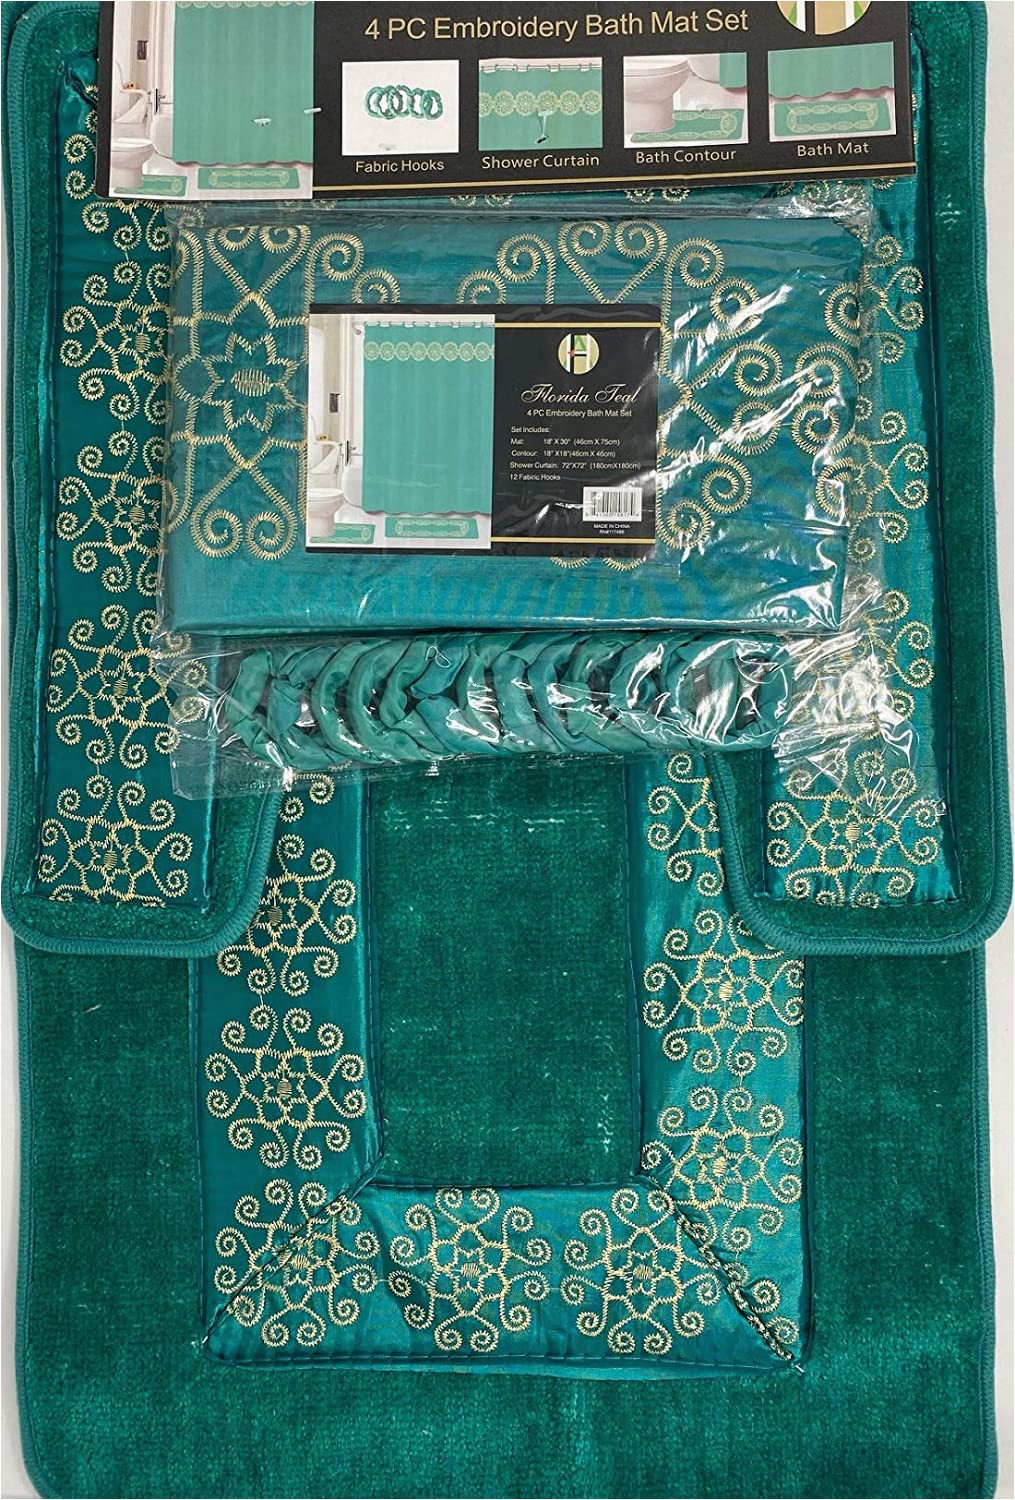 Bathroom Contour Rug Sets 4 Piece Bathroom Rugs Set Non Slip Teal Gold Bath Rug toilet Contour Mat with Fabric Shower Curtain and Matching Rings Florida Teal